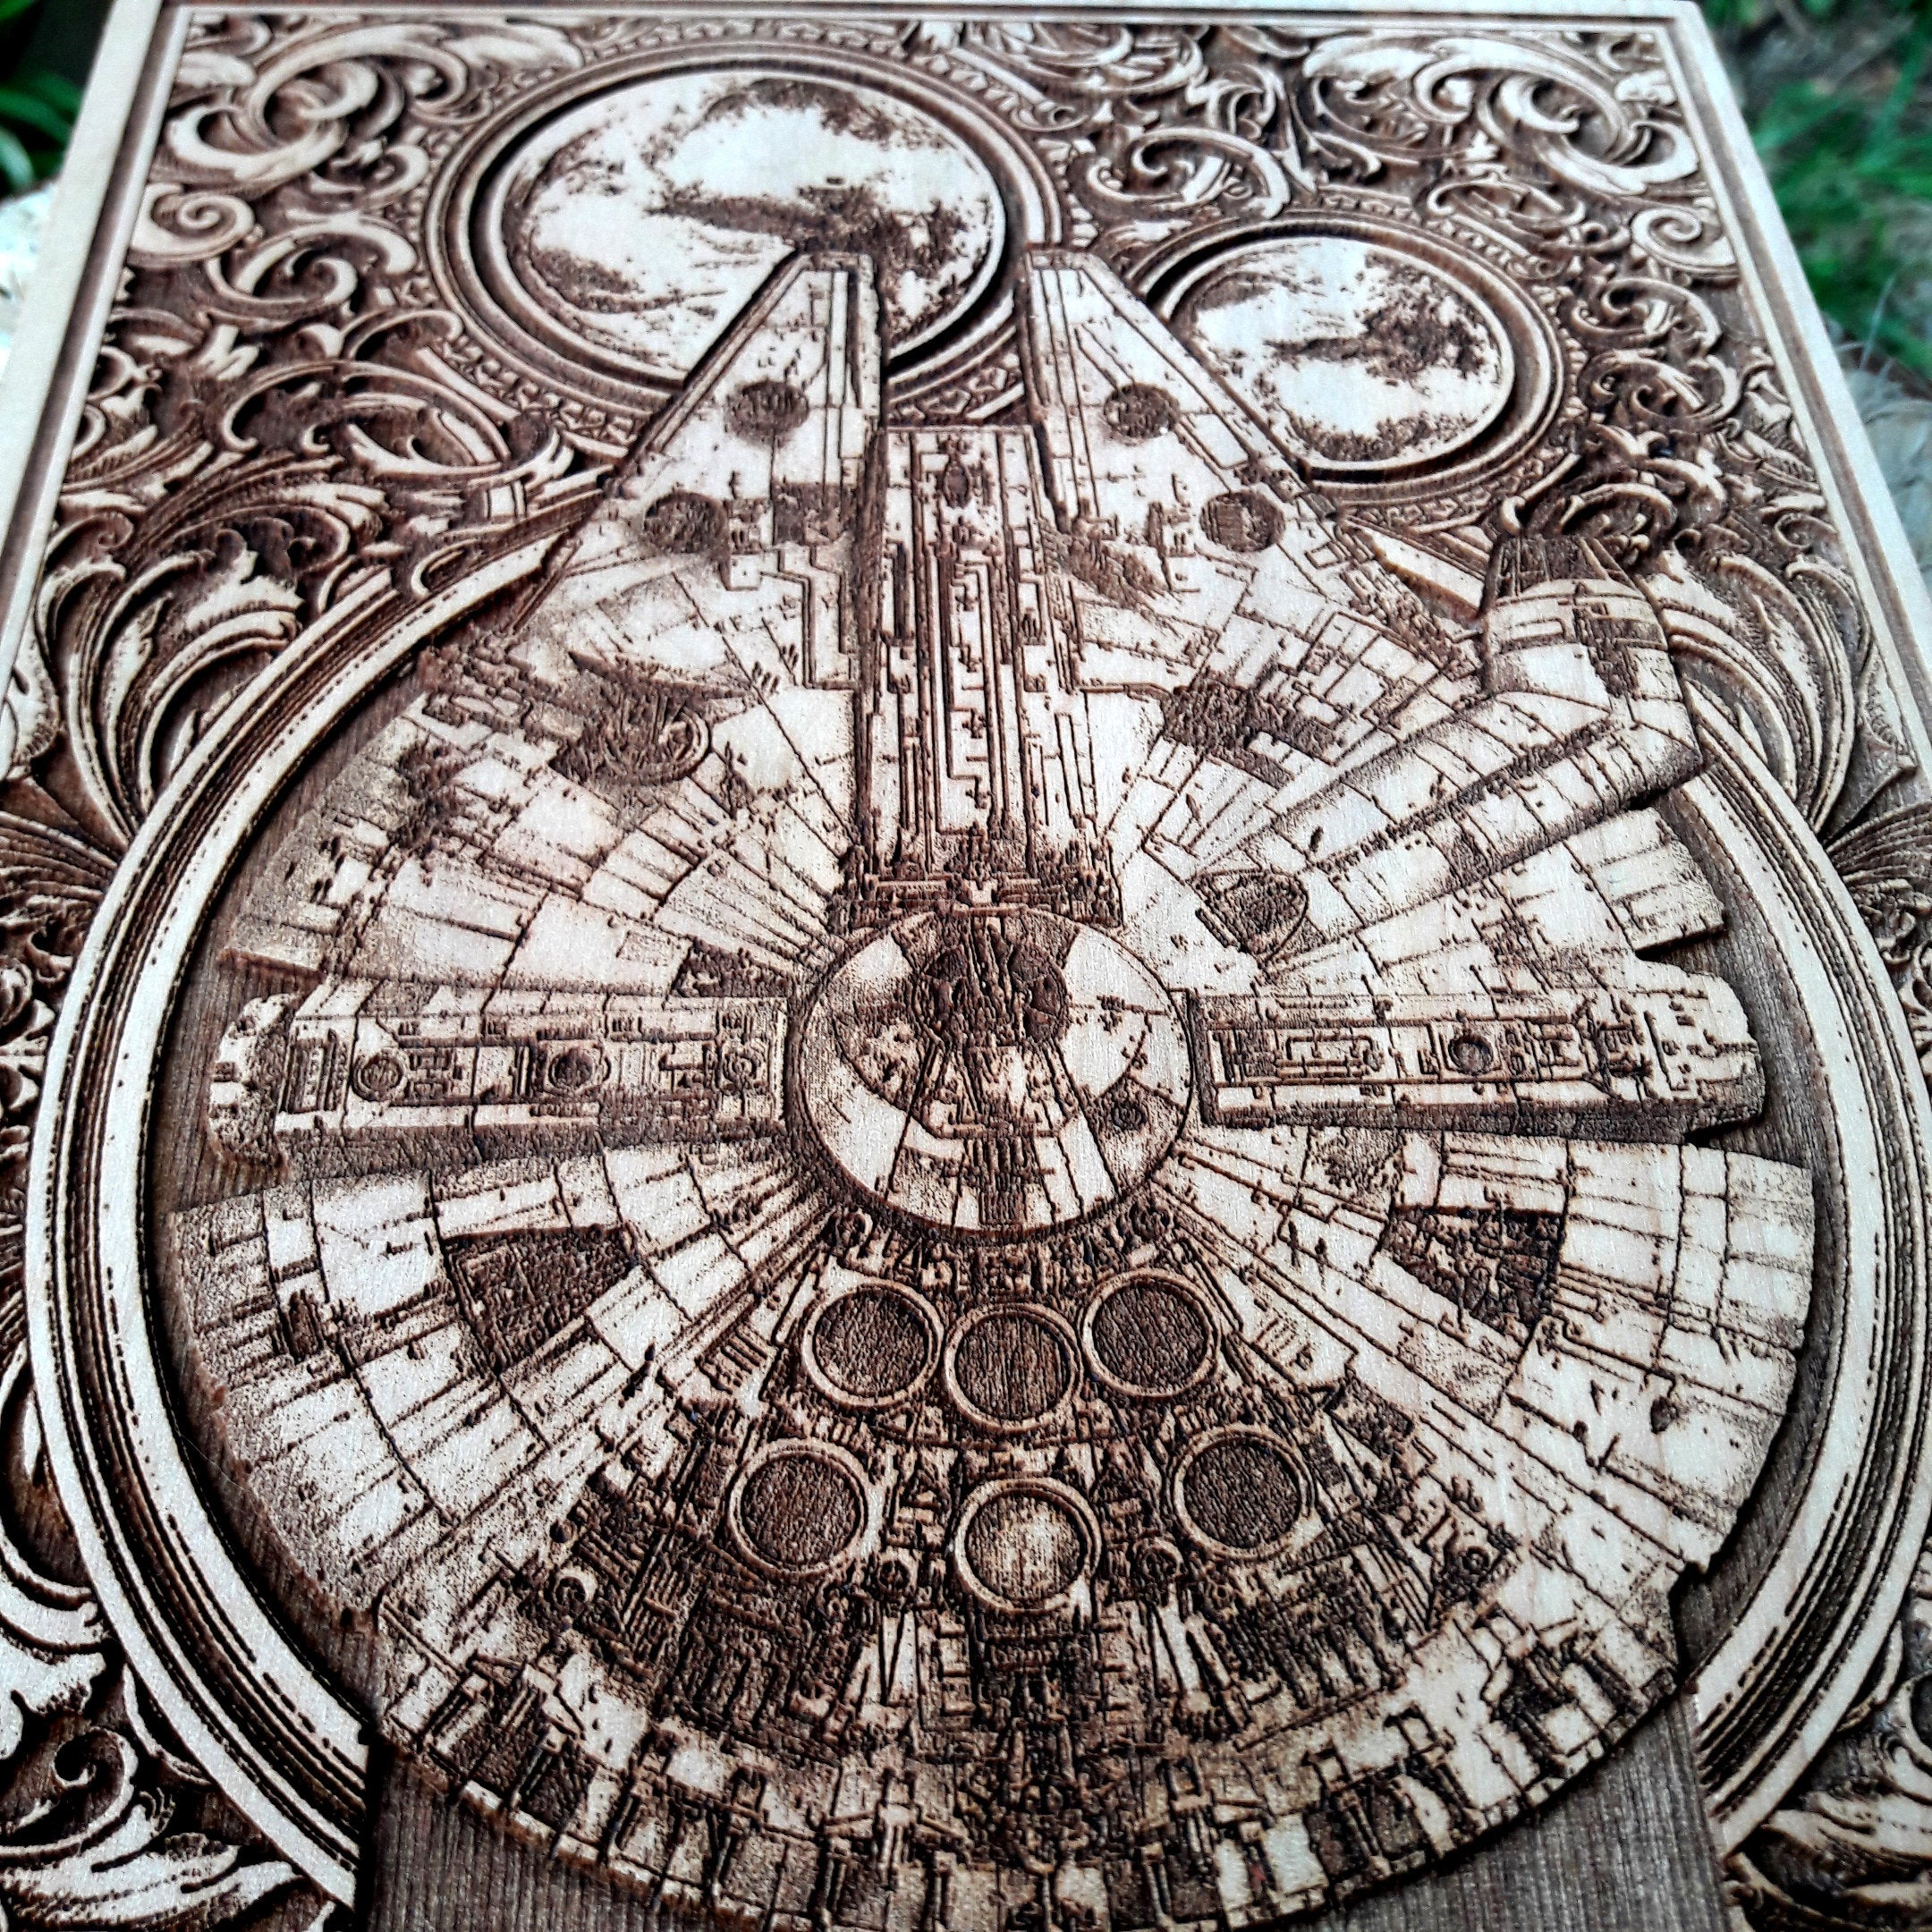 Star Wars Millennium Falcon Artwork